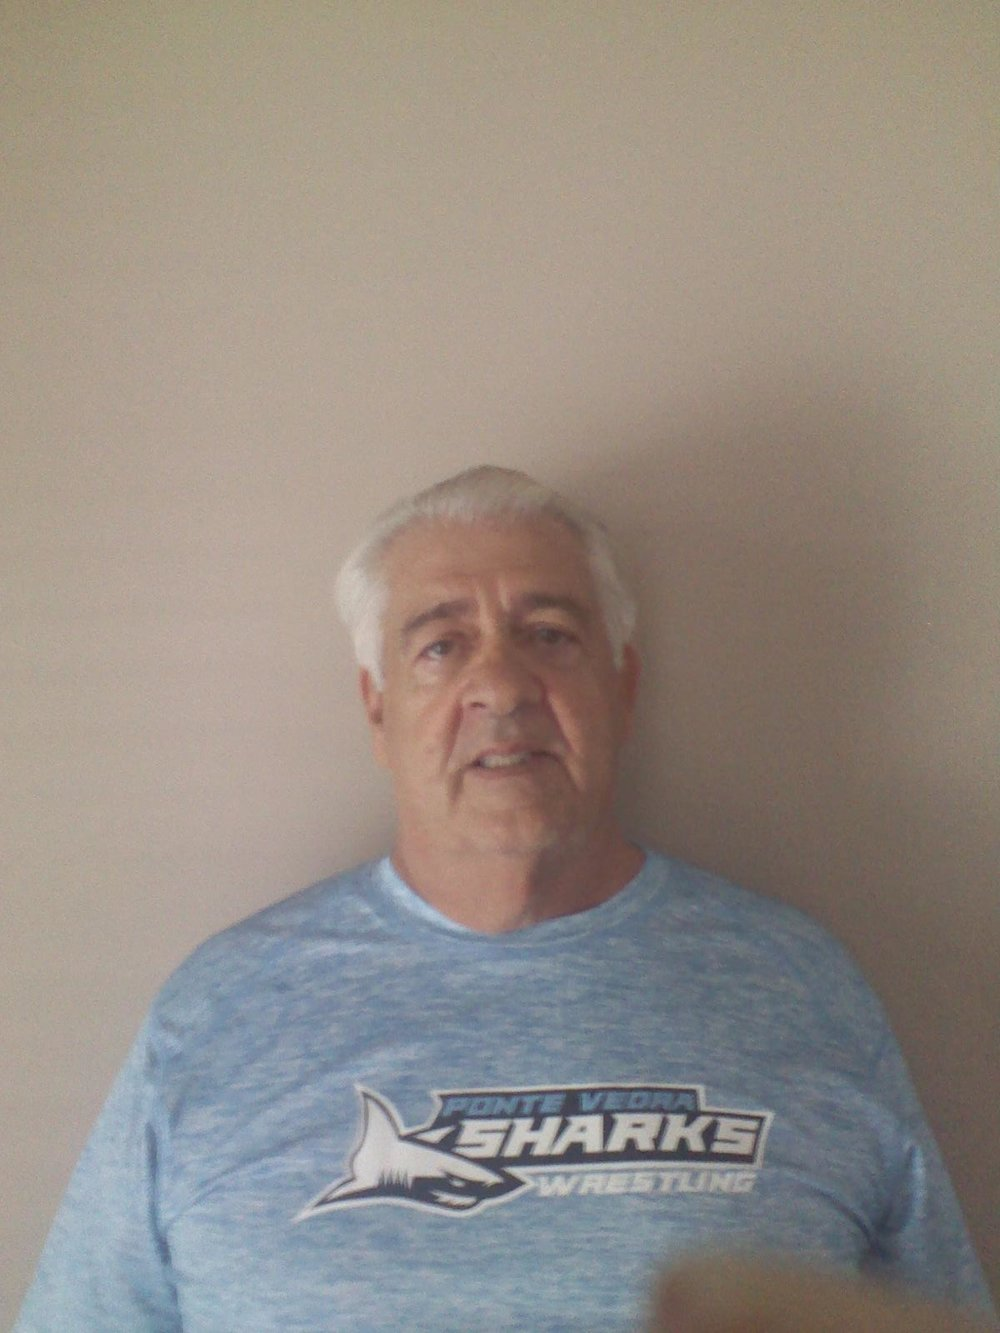 Coach Maritato has been deeply involved with wrestling at both the youth and High School levels for 30+ years. He has coached District and Region Champions in both NJ and FL, with one of his Florida wrestlers being a State Champion and a two time finalist. His Florida coaching stints have been at Nease High School as well as Ponte Vedra High School. Both of Coach Maritato's sons were successful college wrestlers. -